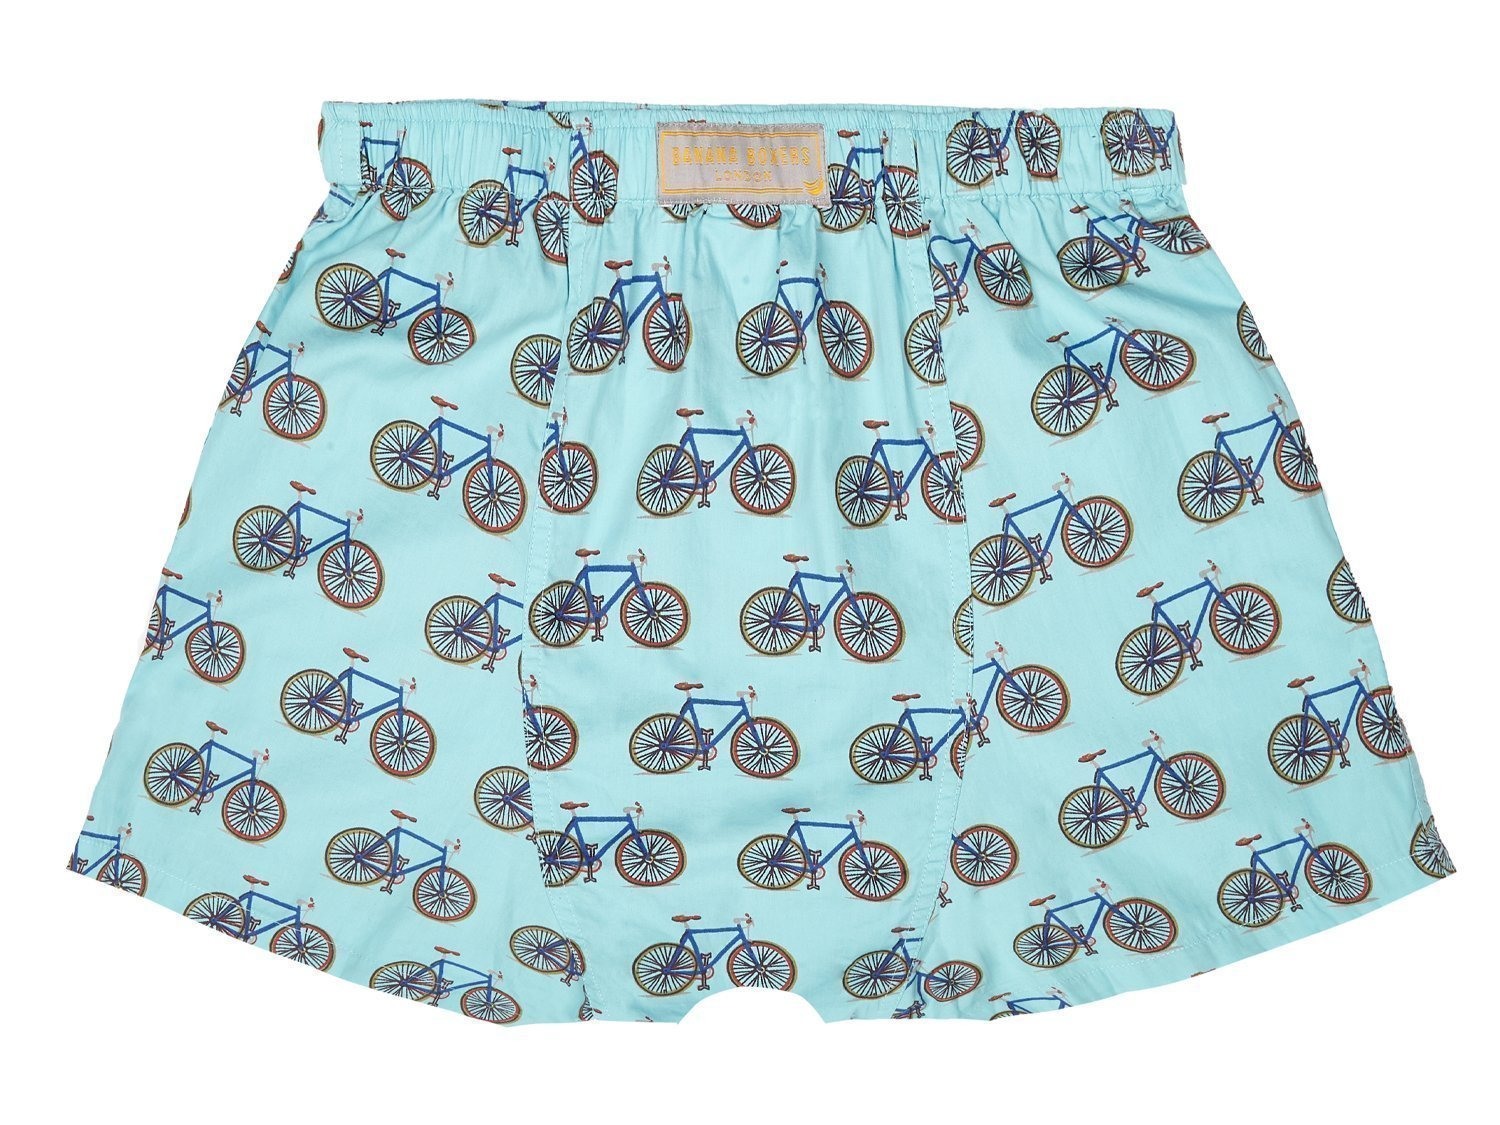 Boris's Bike Boxers Shorts back